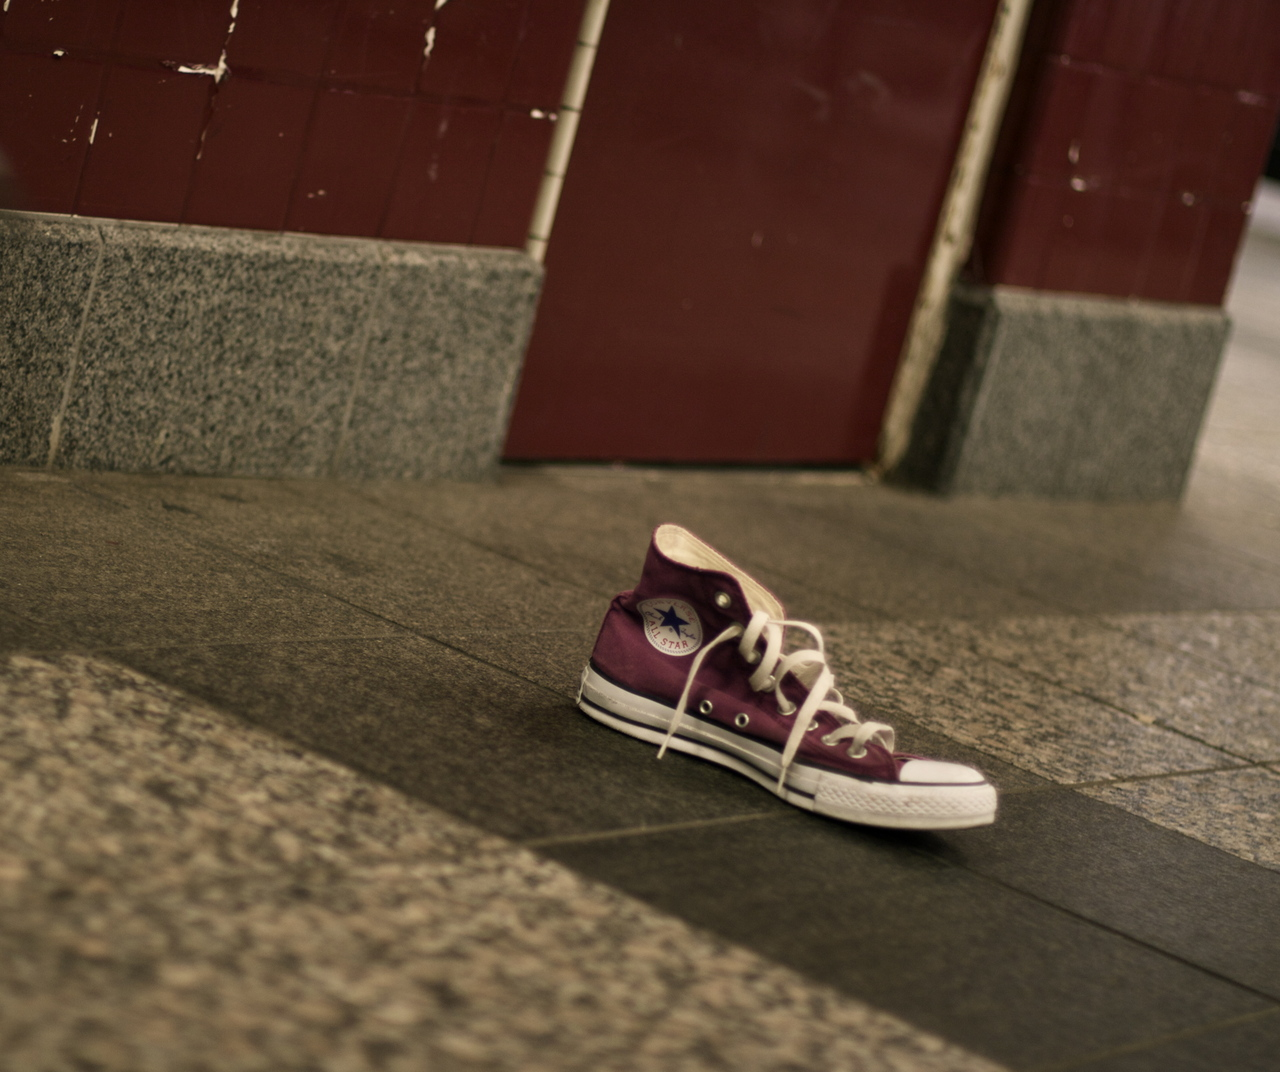 Lonely purple chuck in the subway this morning